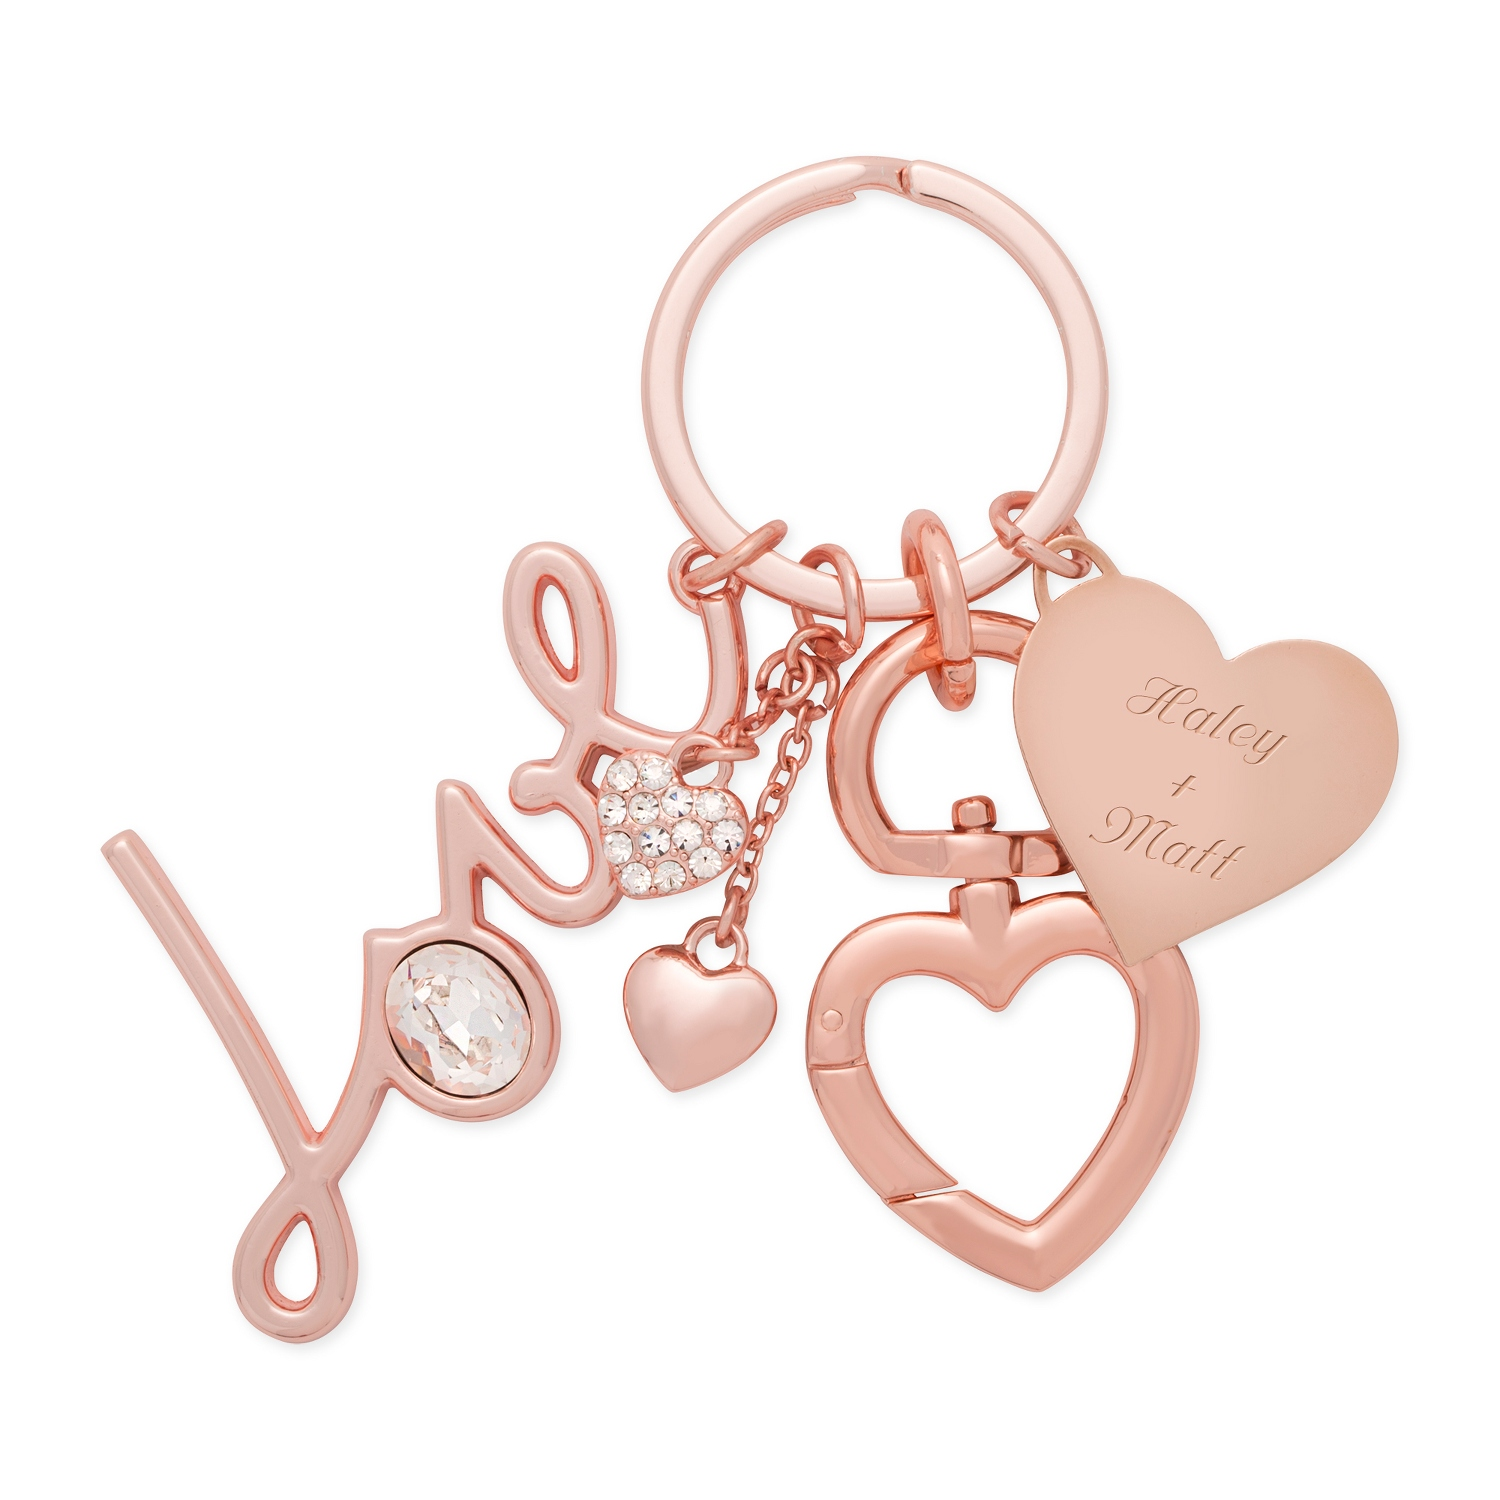 Personalized Key Chains For Her at Things Remembered 9ccdc584c